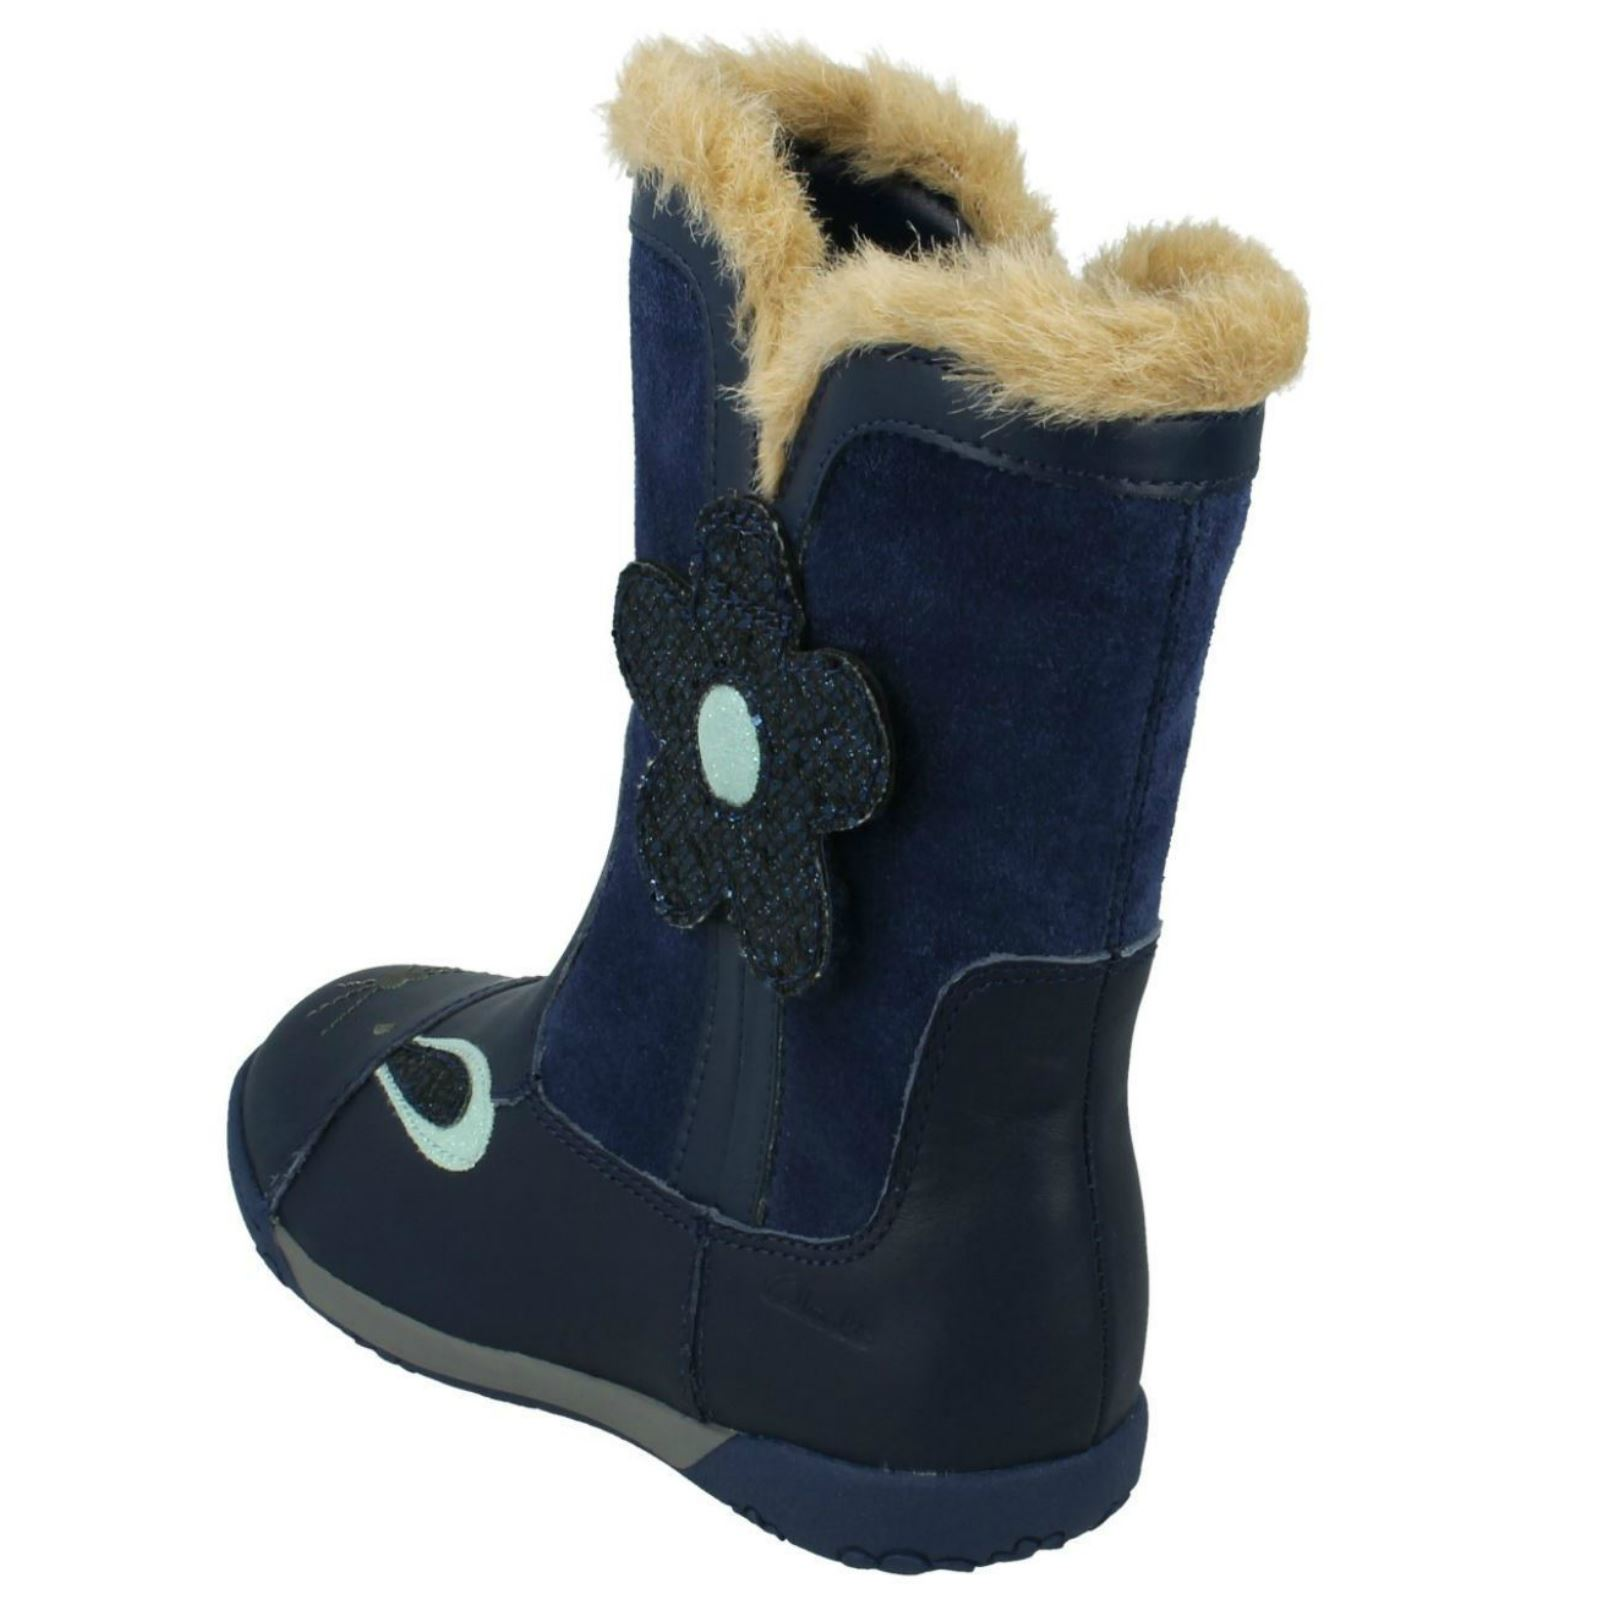 Clarks Girls Boots Nibbles Dot for sale